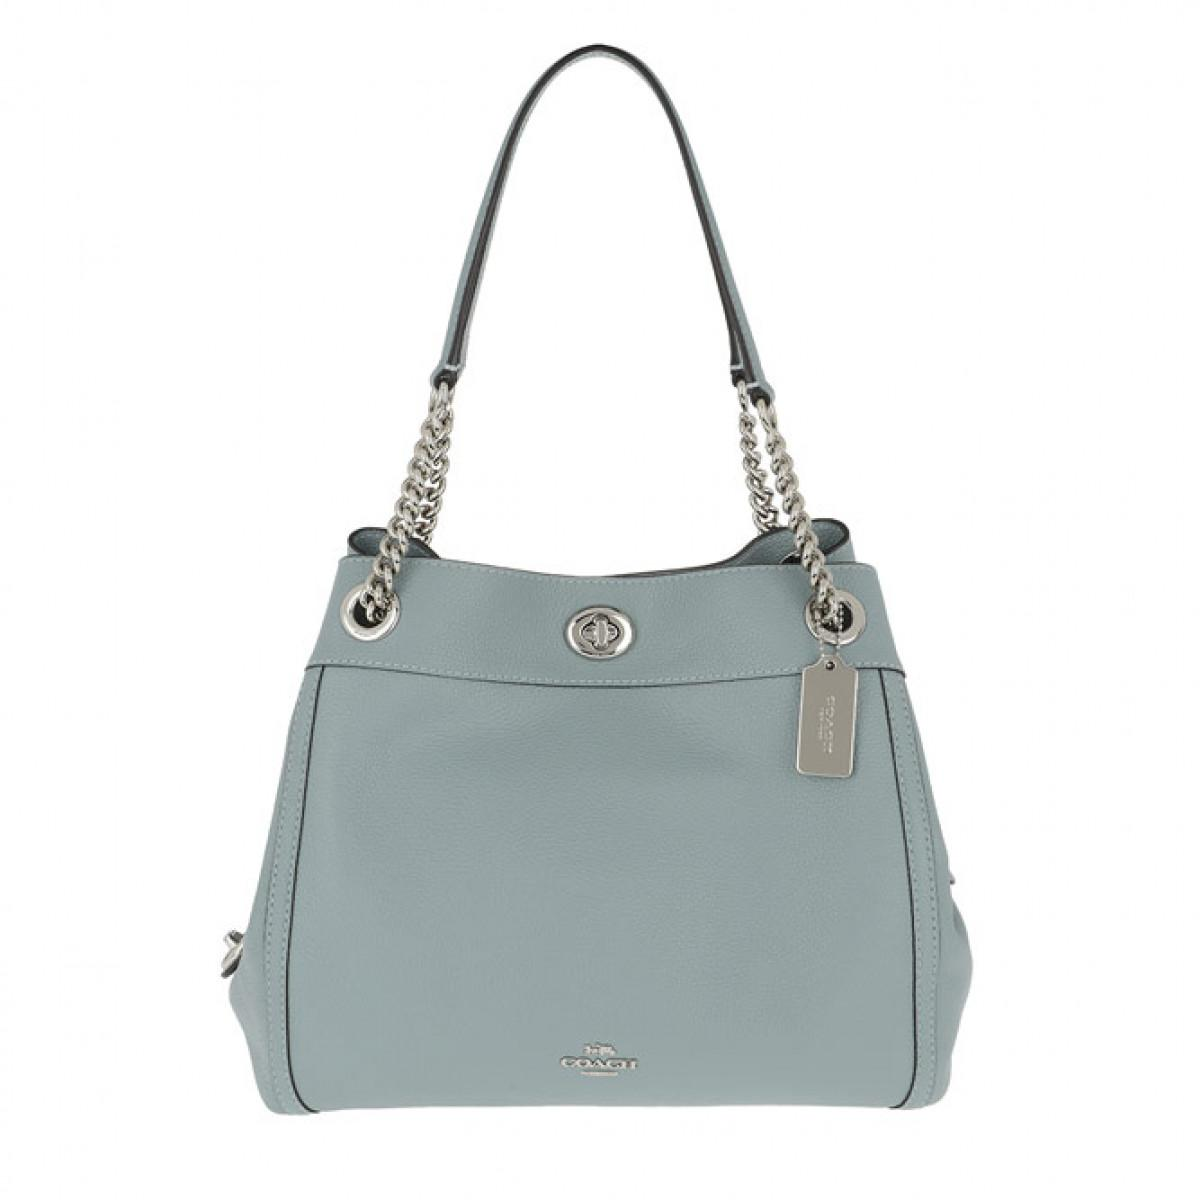 a7c7e2c2c3c COACH. Women s Polished Leather Turnlock Edie Shoulder Bag Sage